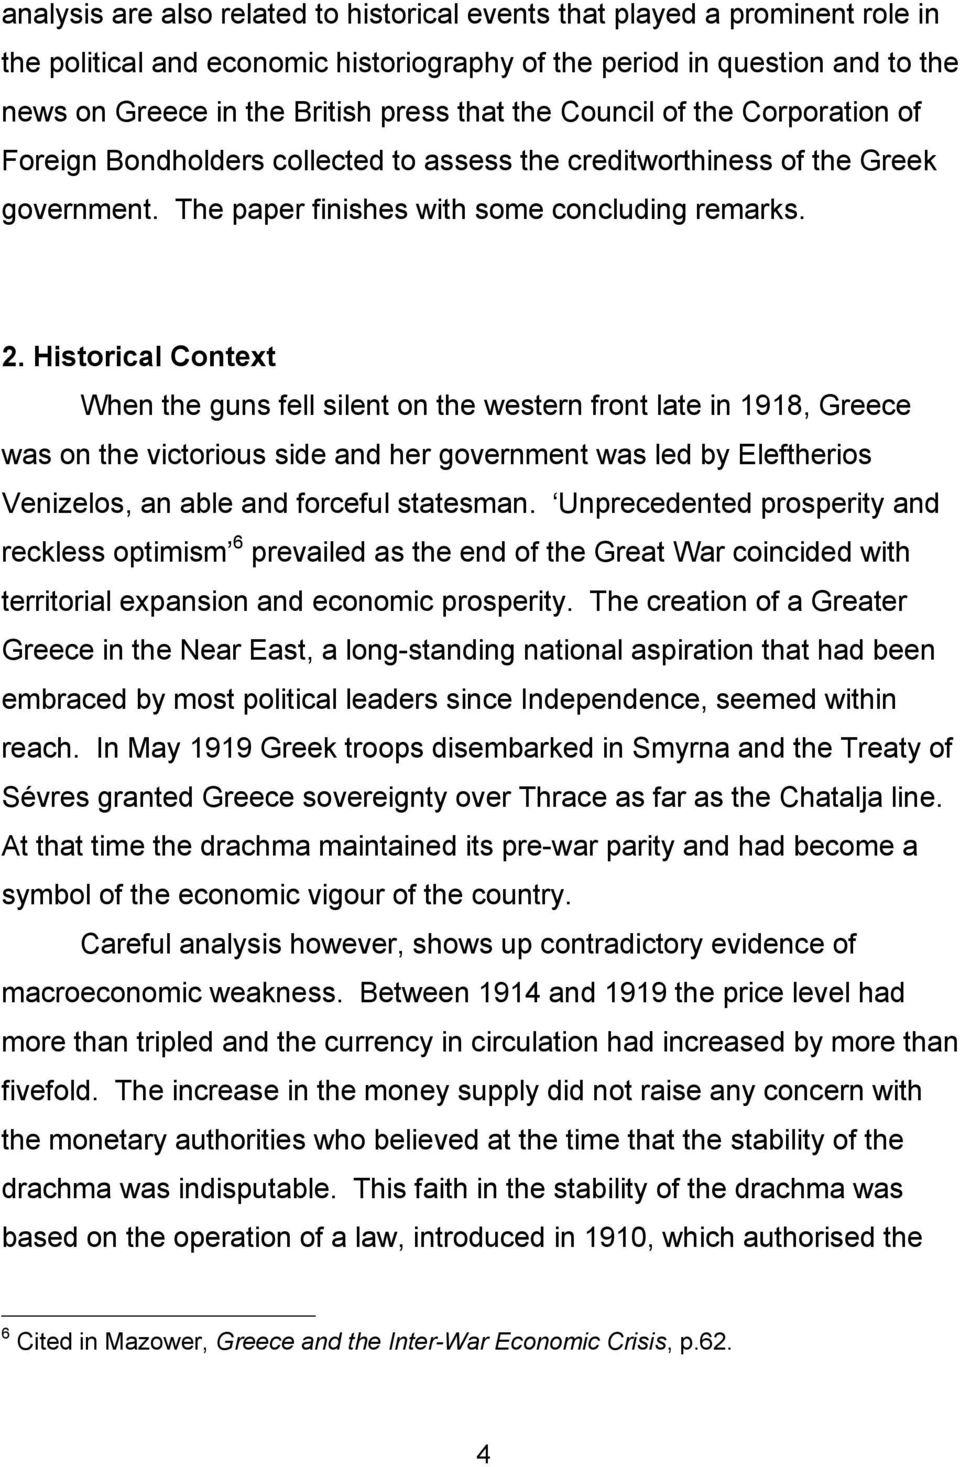 Historical Context When the guns fell silent on the western front late in 1918, Greece was on the victorious side and her government was led by Eleftherios Venizelos, an able and forceful statesman.